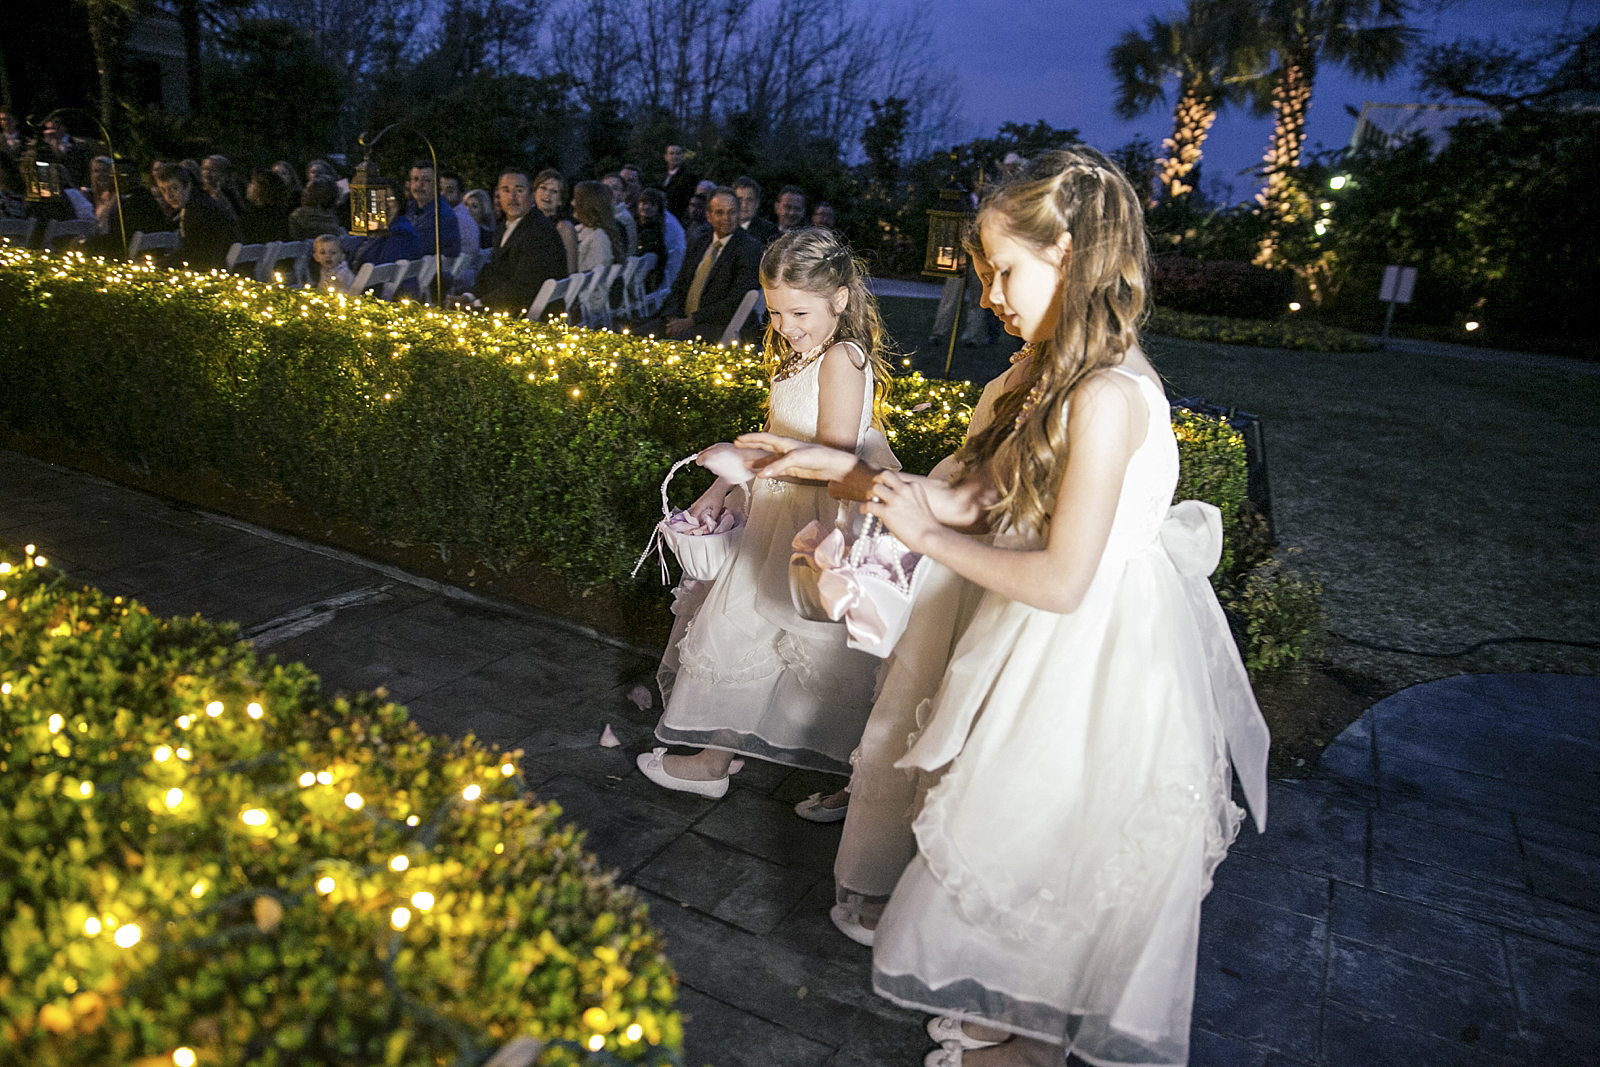 New Orleans Wedding at Southern Oaks Plantation, Featured in Southern Bride. The Flower girls as they make their way down the lit up aisle.